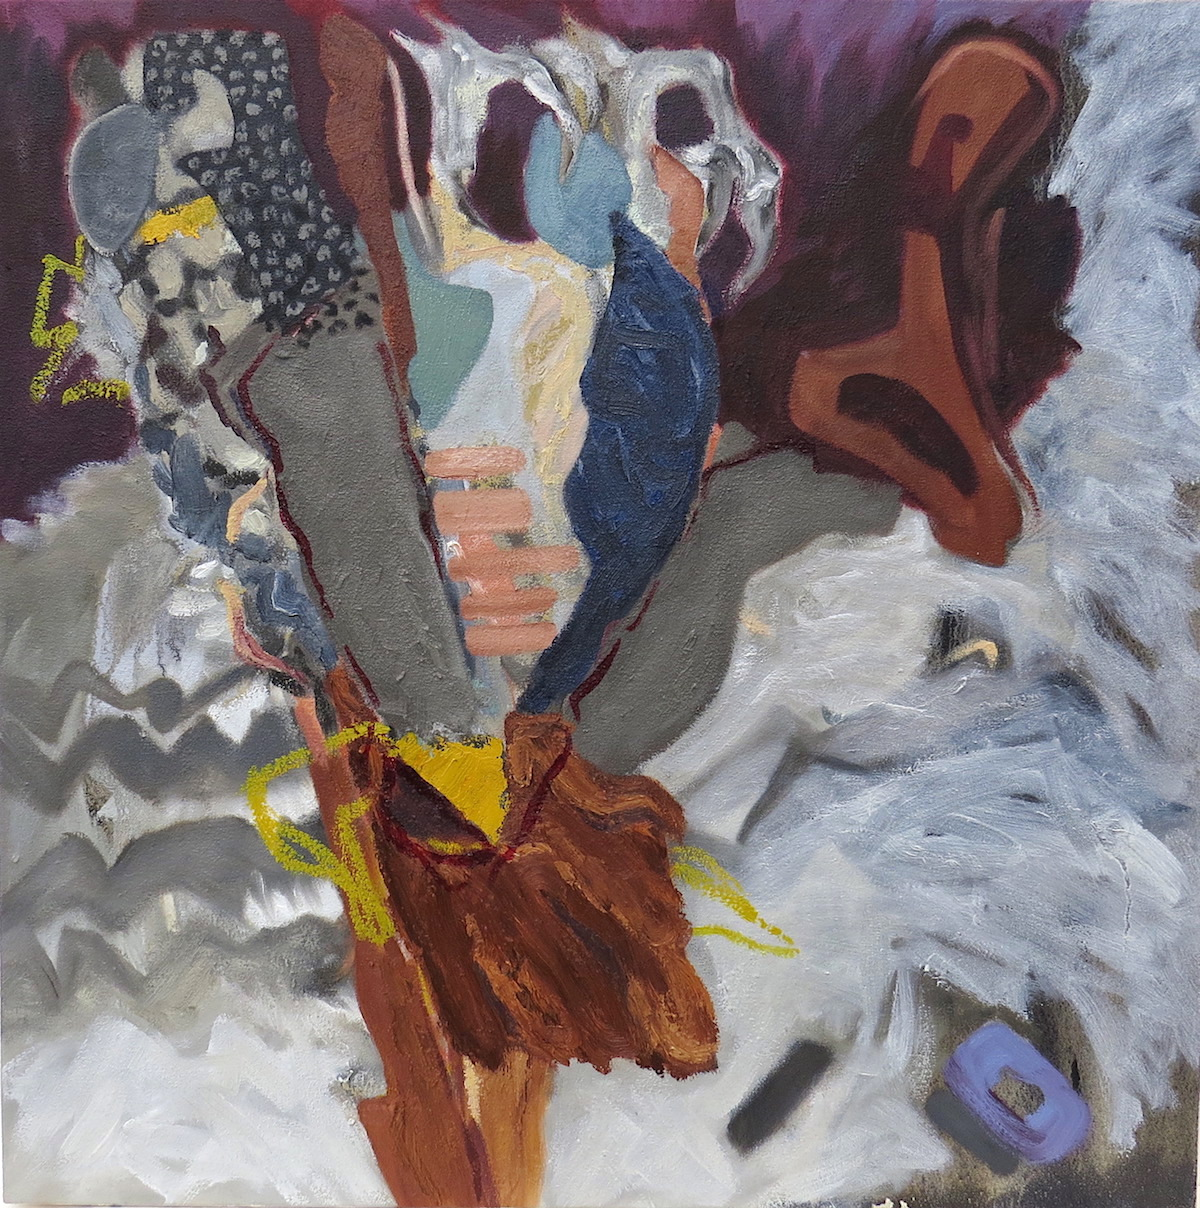 flicker reconstructed, oil on canvas by Canadian contemporary painter barbra edwards, gulf islands